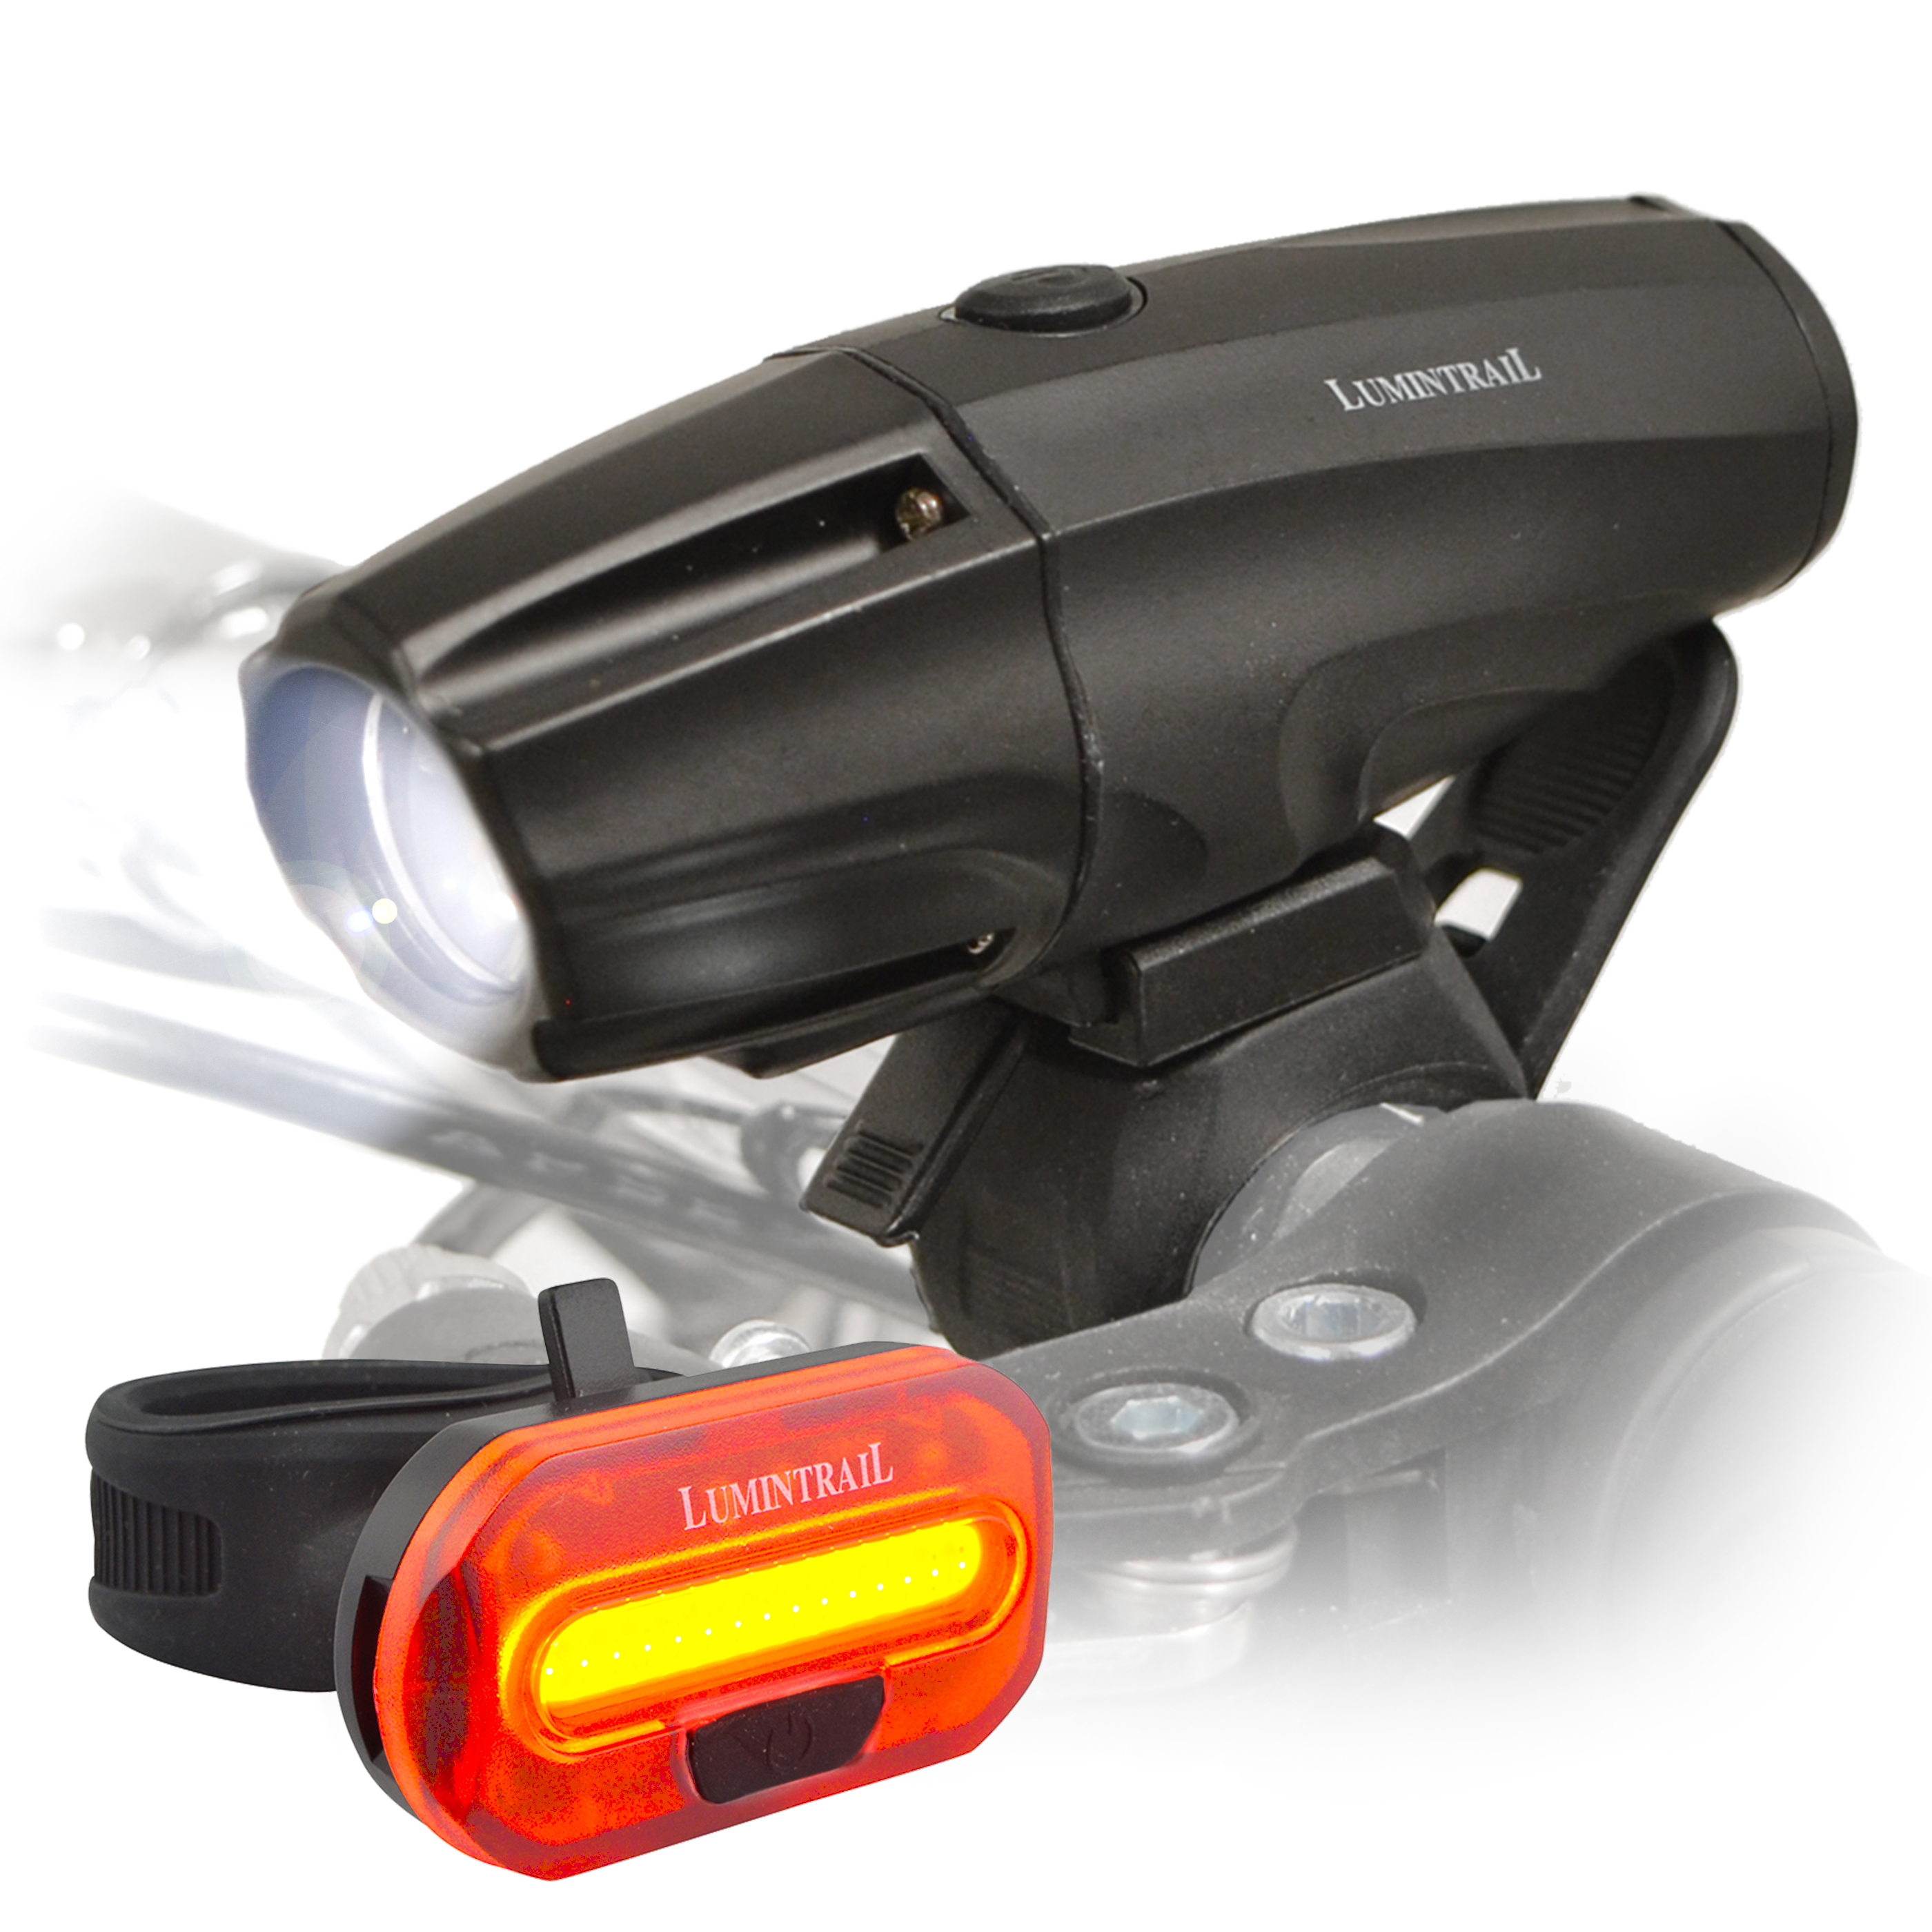 Lumintrail Super Bright Bike Light USB Rechargeable 1000 Lumen LED Safety Commuter Headlight Taillight Set Easy Install and Quick Release